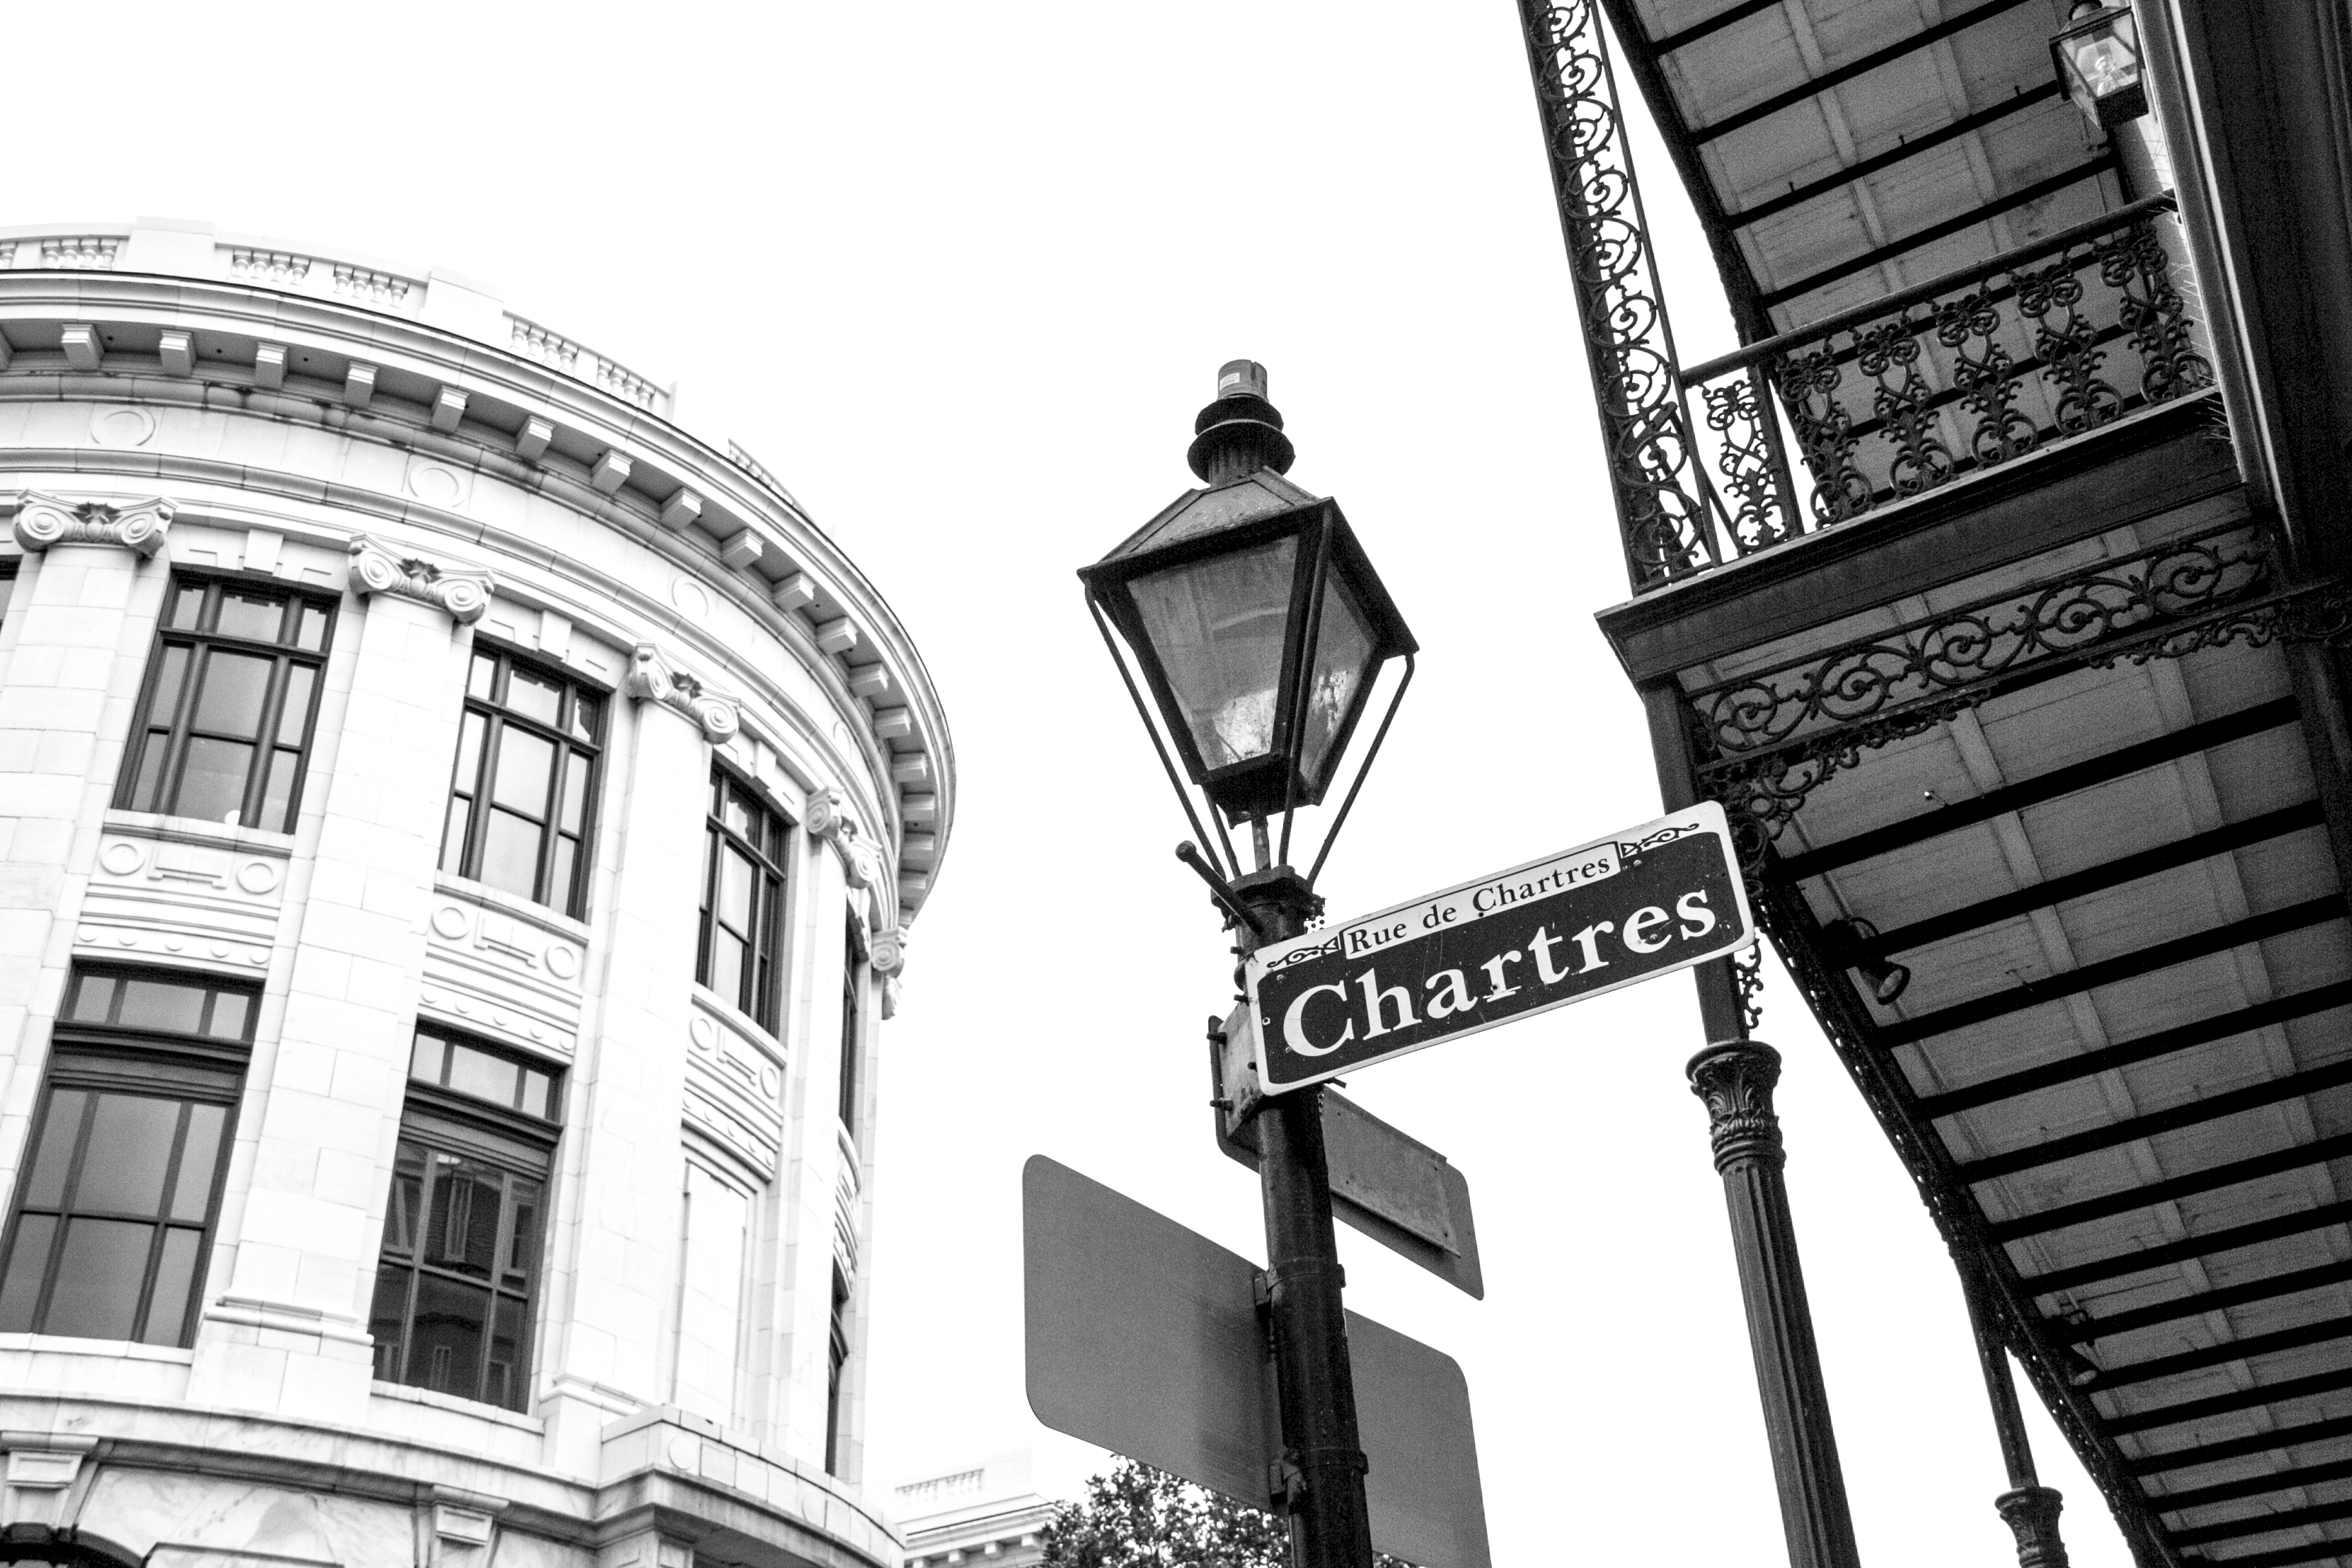 Chartres street, New Orleans